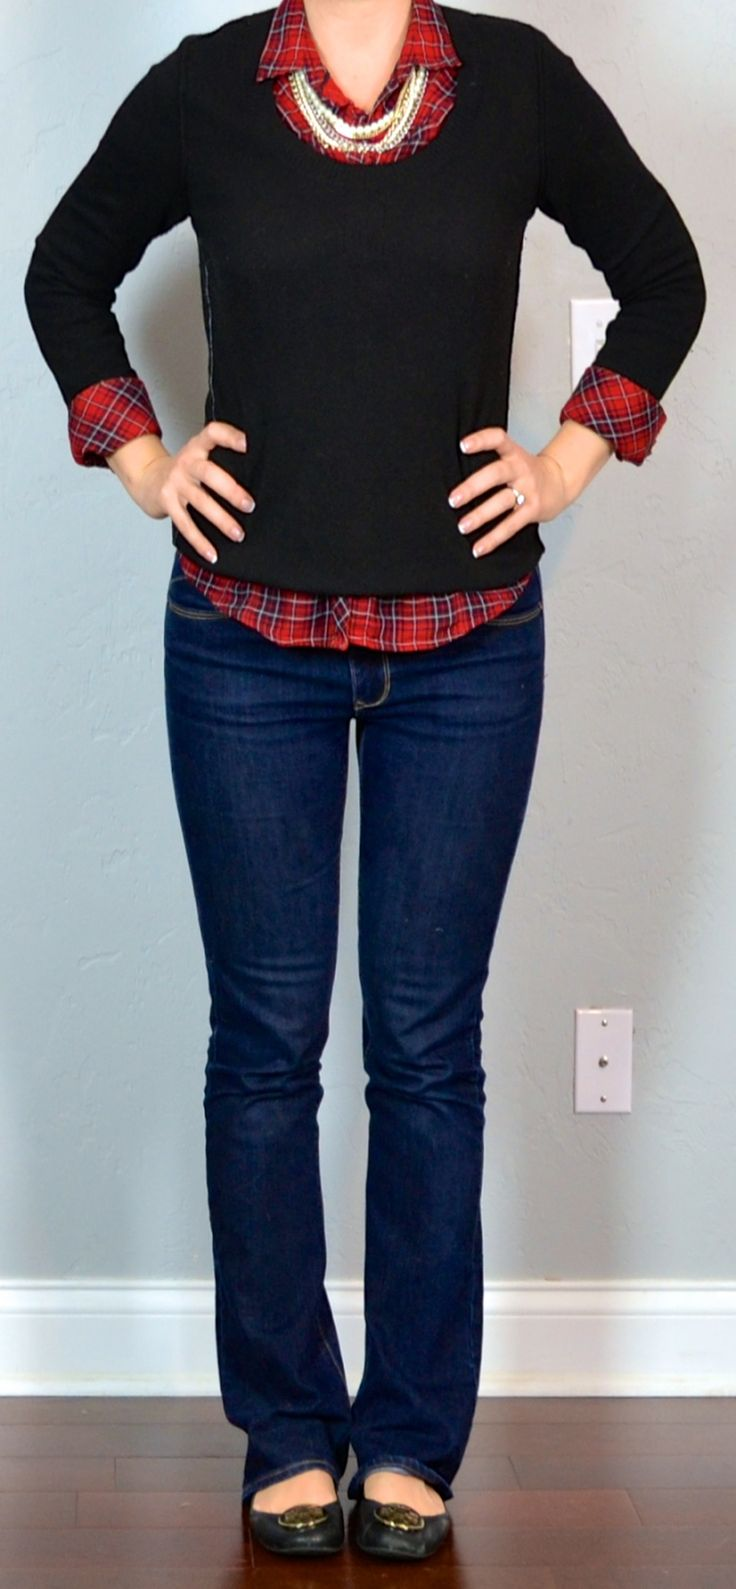 Outfit Posts: outfit post: red plaid shirt, black sweater, bootcut jeans, black flats (cute for holidays)